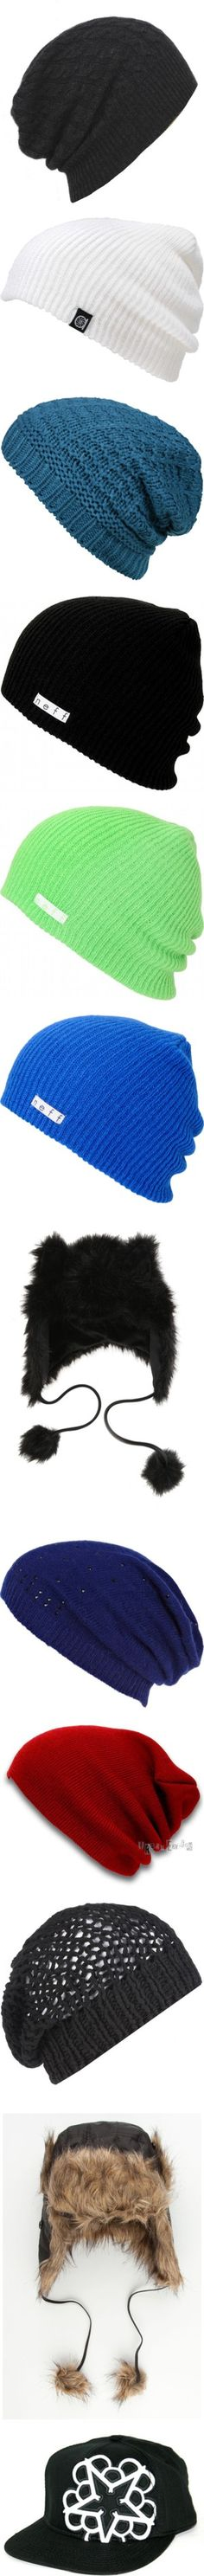 """Beanies and Snapbacks"" by dicedbypain ❤ liked on Polyvore"